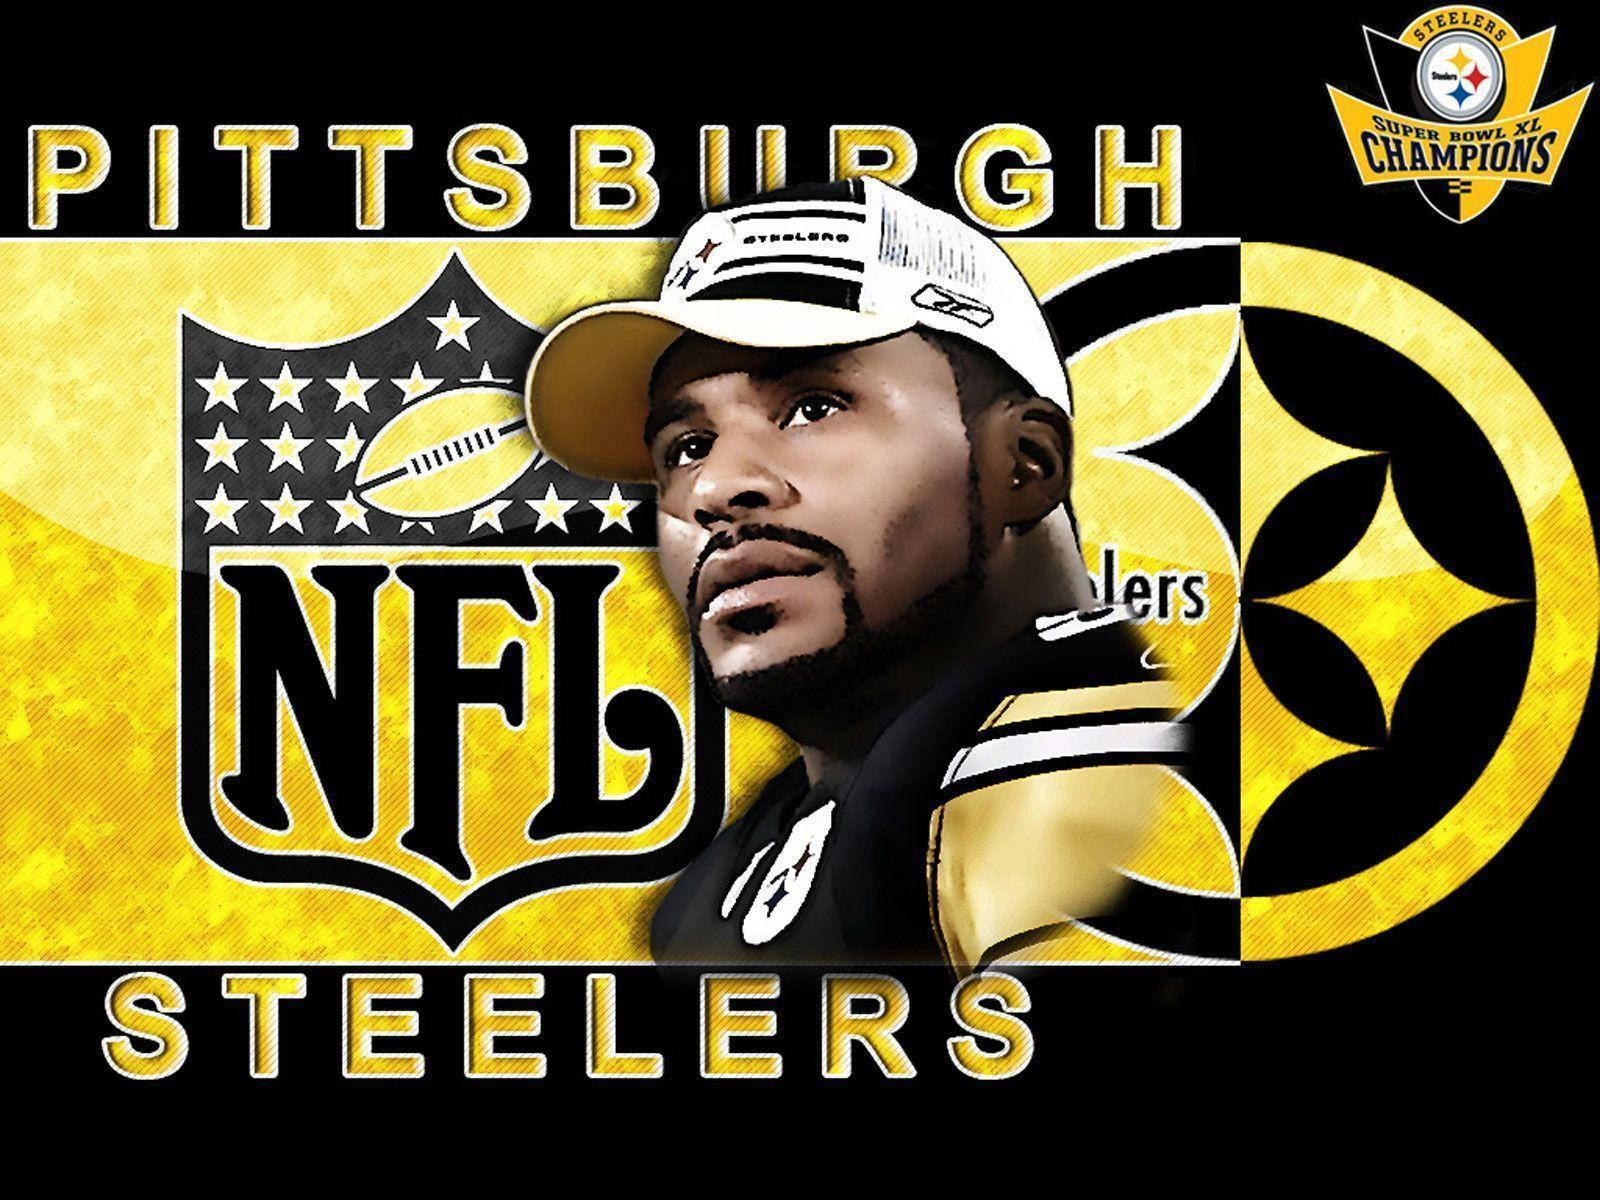 Free Pittsburgh Steelers wallpaper desktop image | Pittsburgh ...